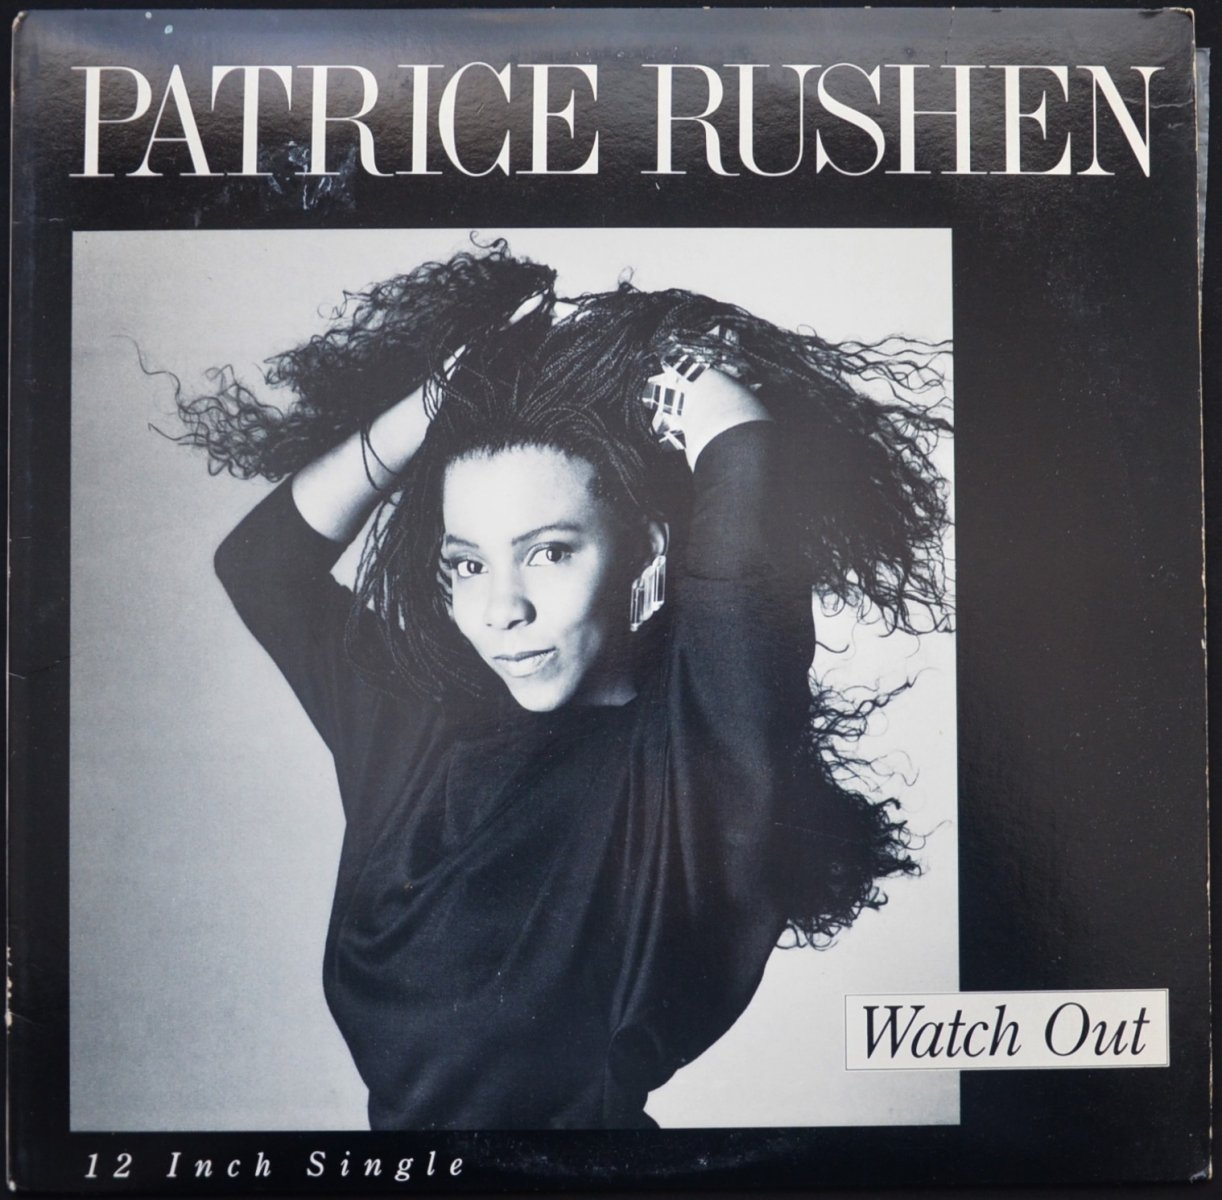 PATRICE RUSHEN ‎/ WATCH OUT / OVER THE PHONE (12